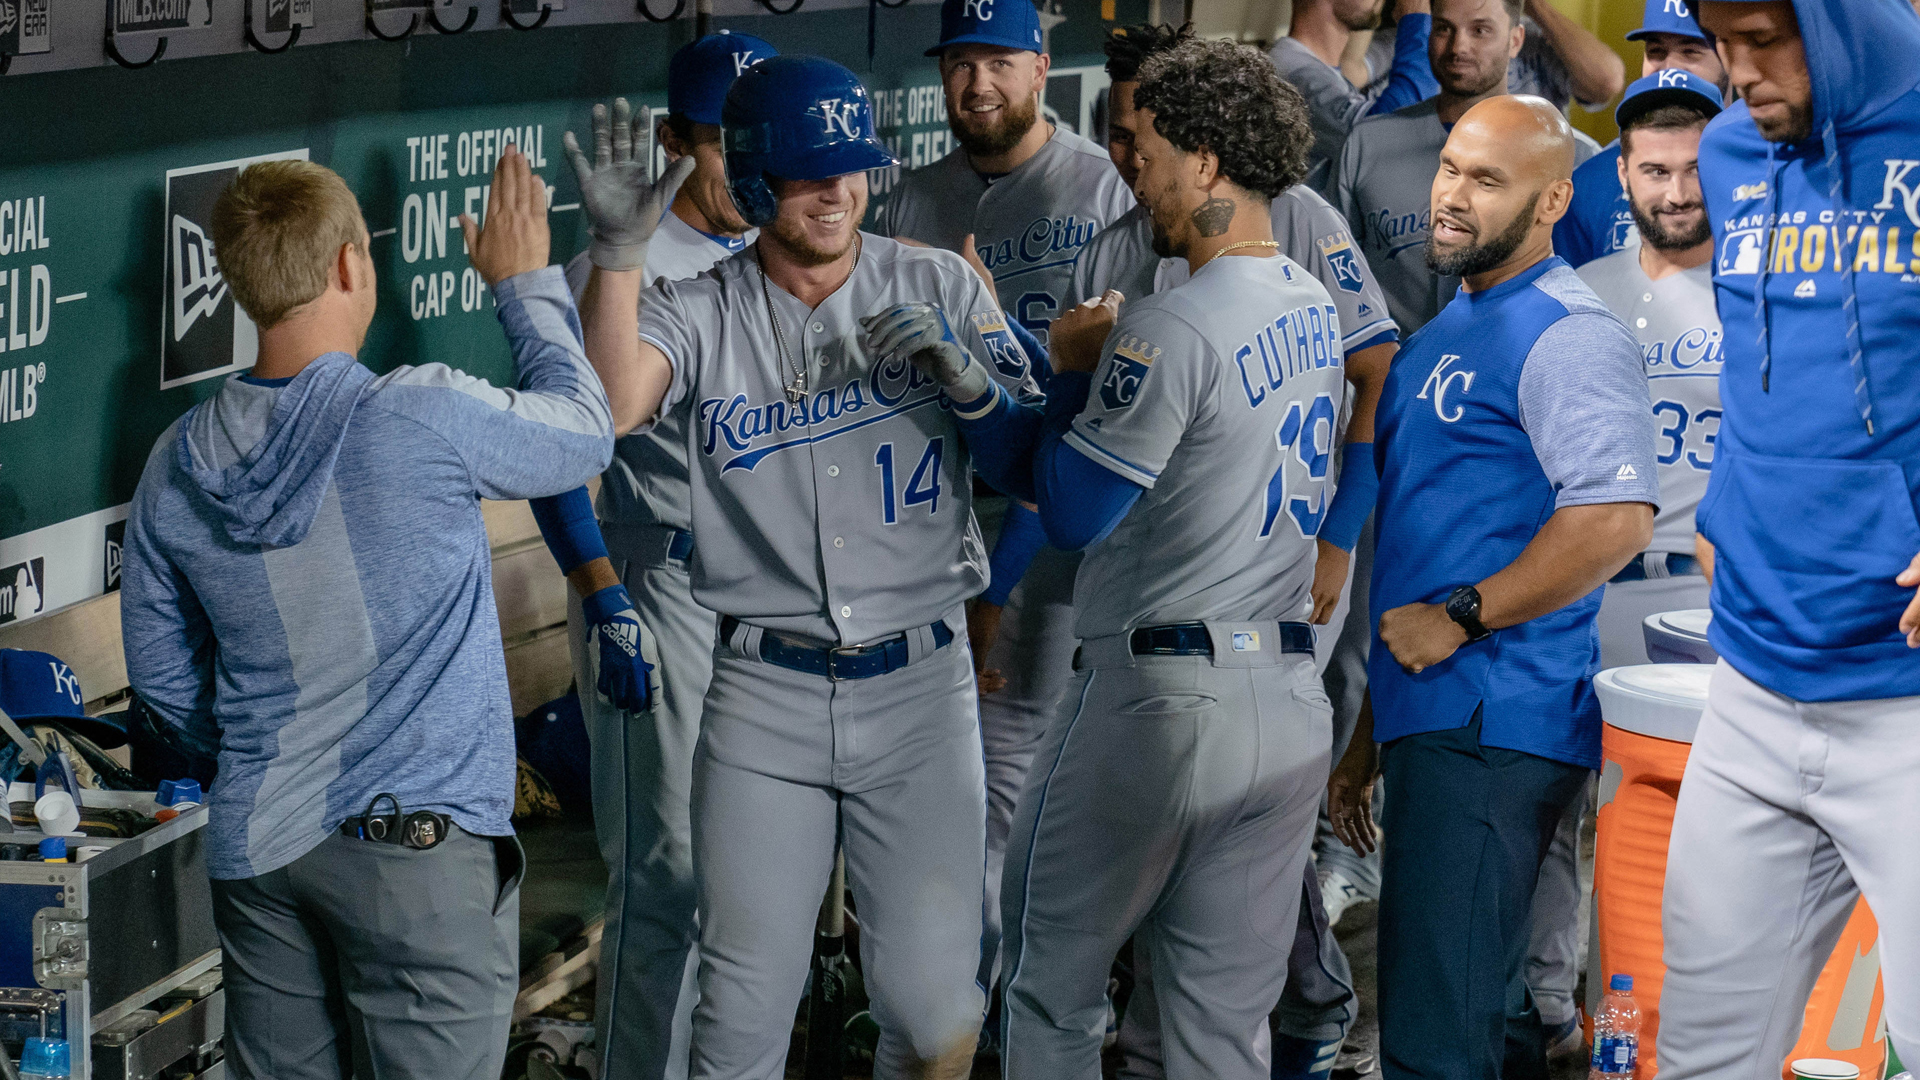 Liam Hendriks blows save as A's lose stunner to Royals